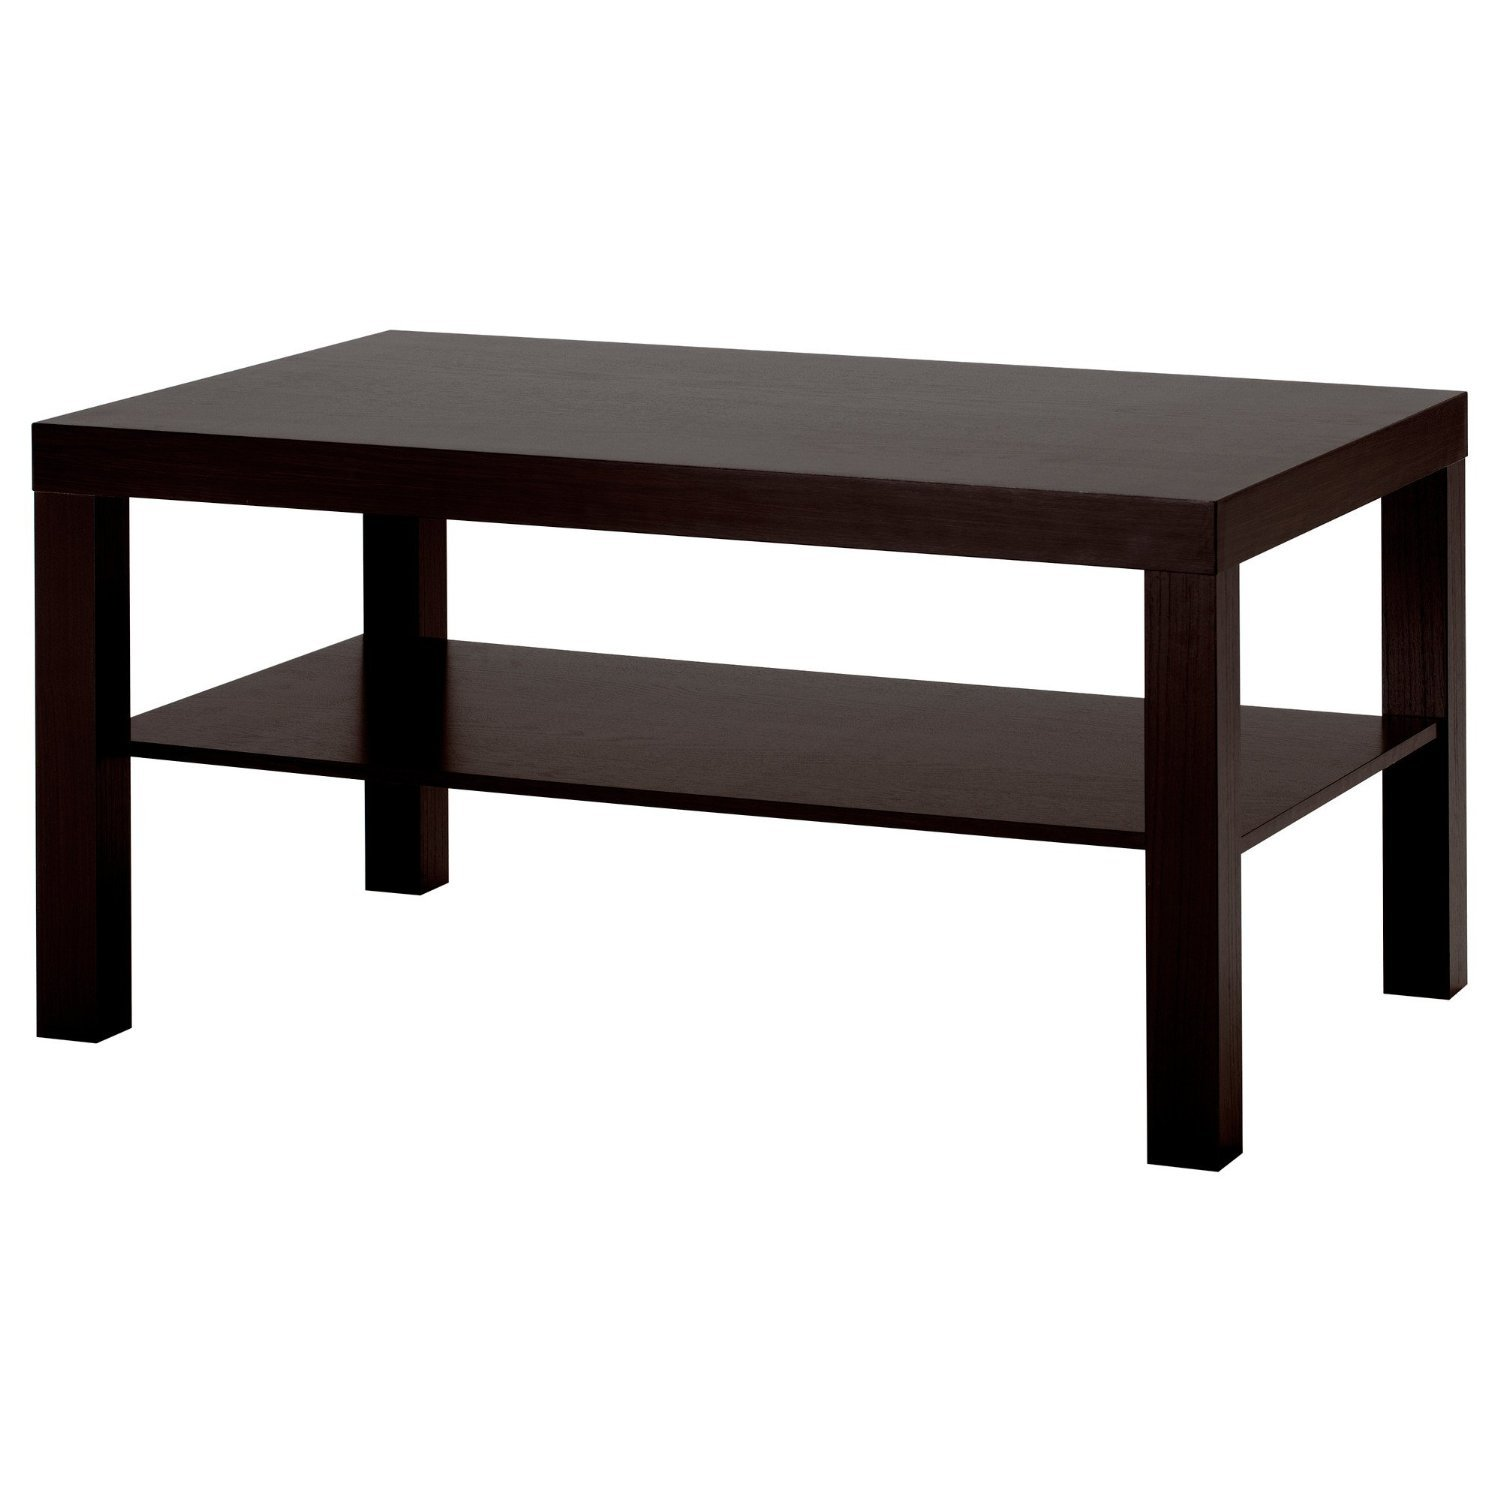 Magnificent Premium Coffee Table Living Room Black Modern Low Wood Contemporary Ikea Lack Country Wooden Bench Furniture Style Machost Co Dining Chair Design Ideas Machostcouk